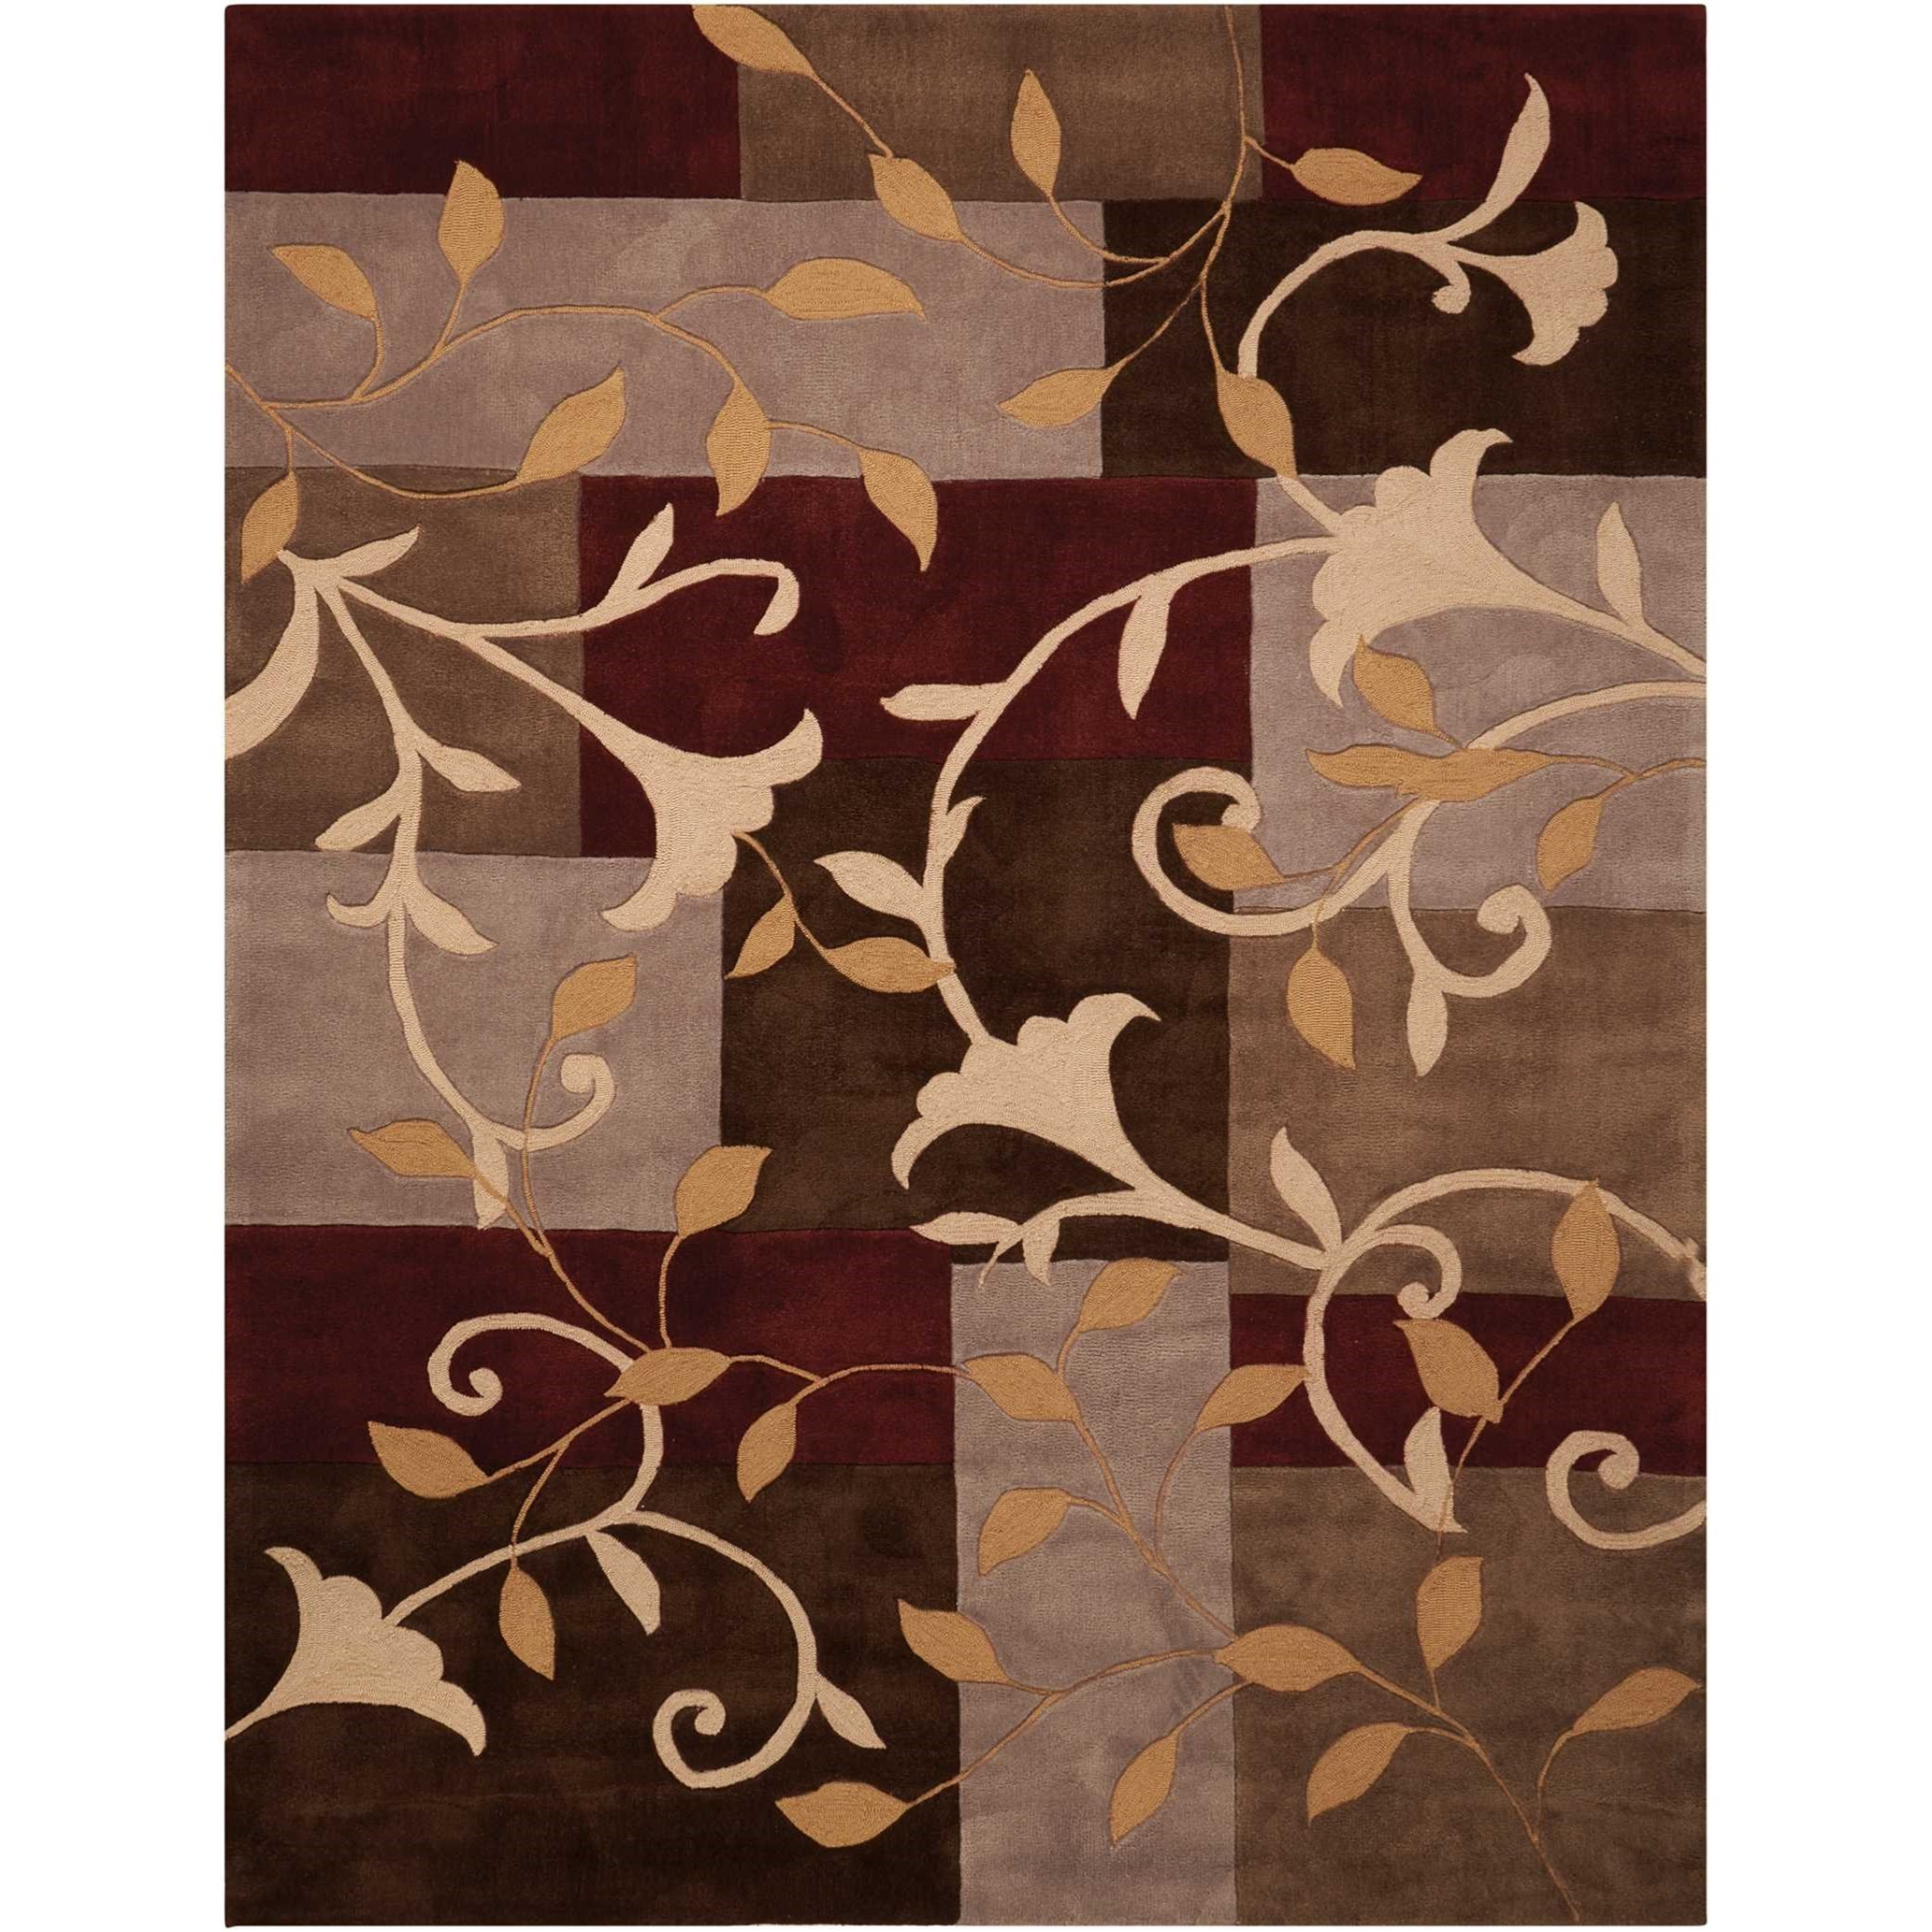 Contour Contour CON01 Brown 4'x6'  Area Rug by Nourison at Sprintz Furniture